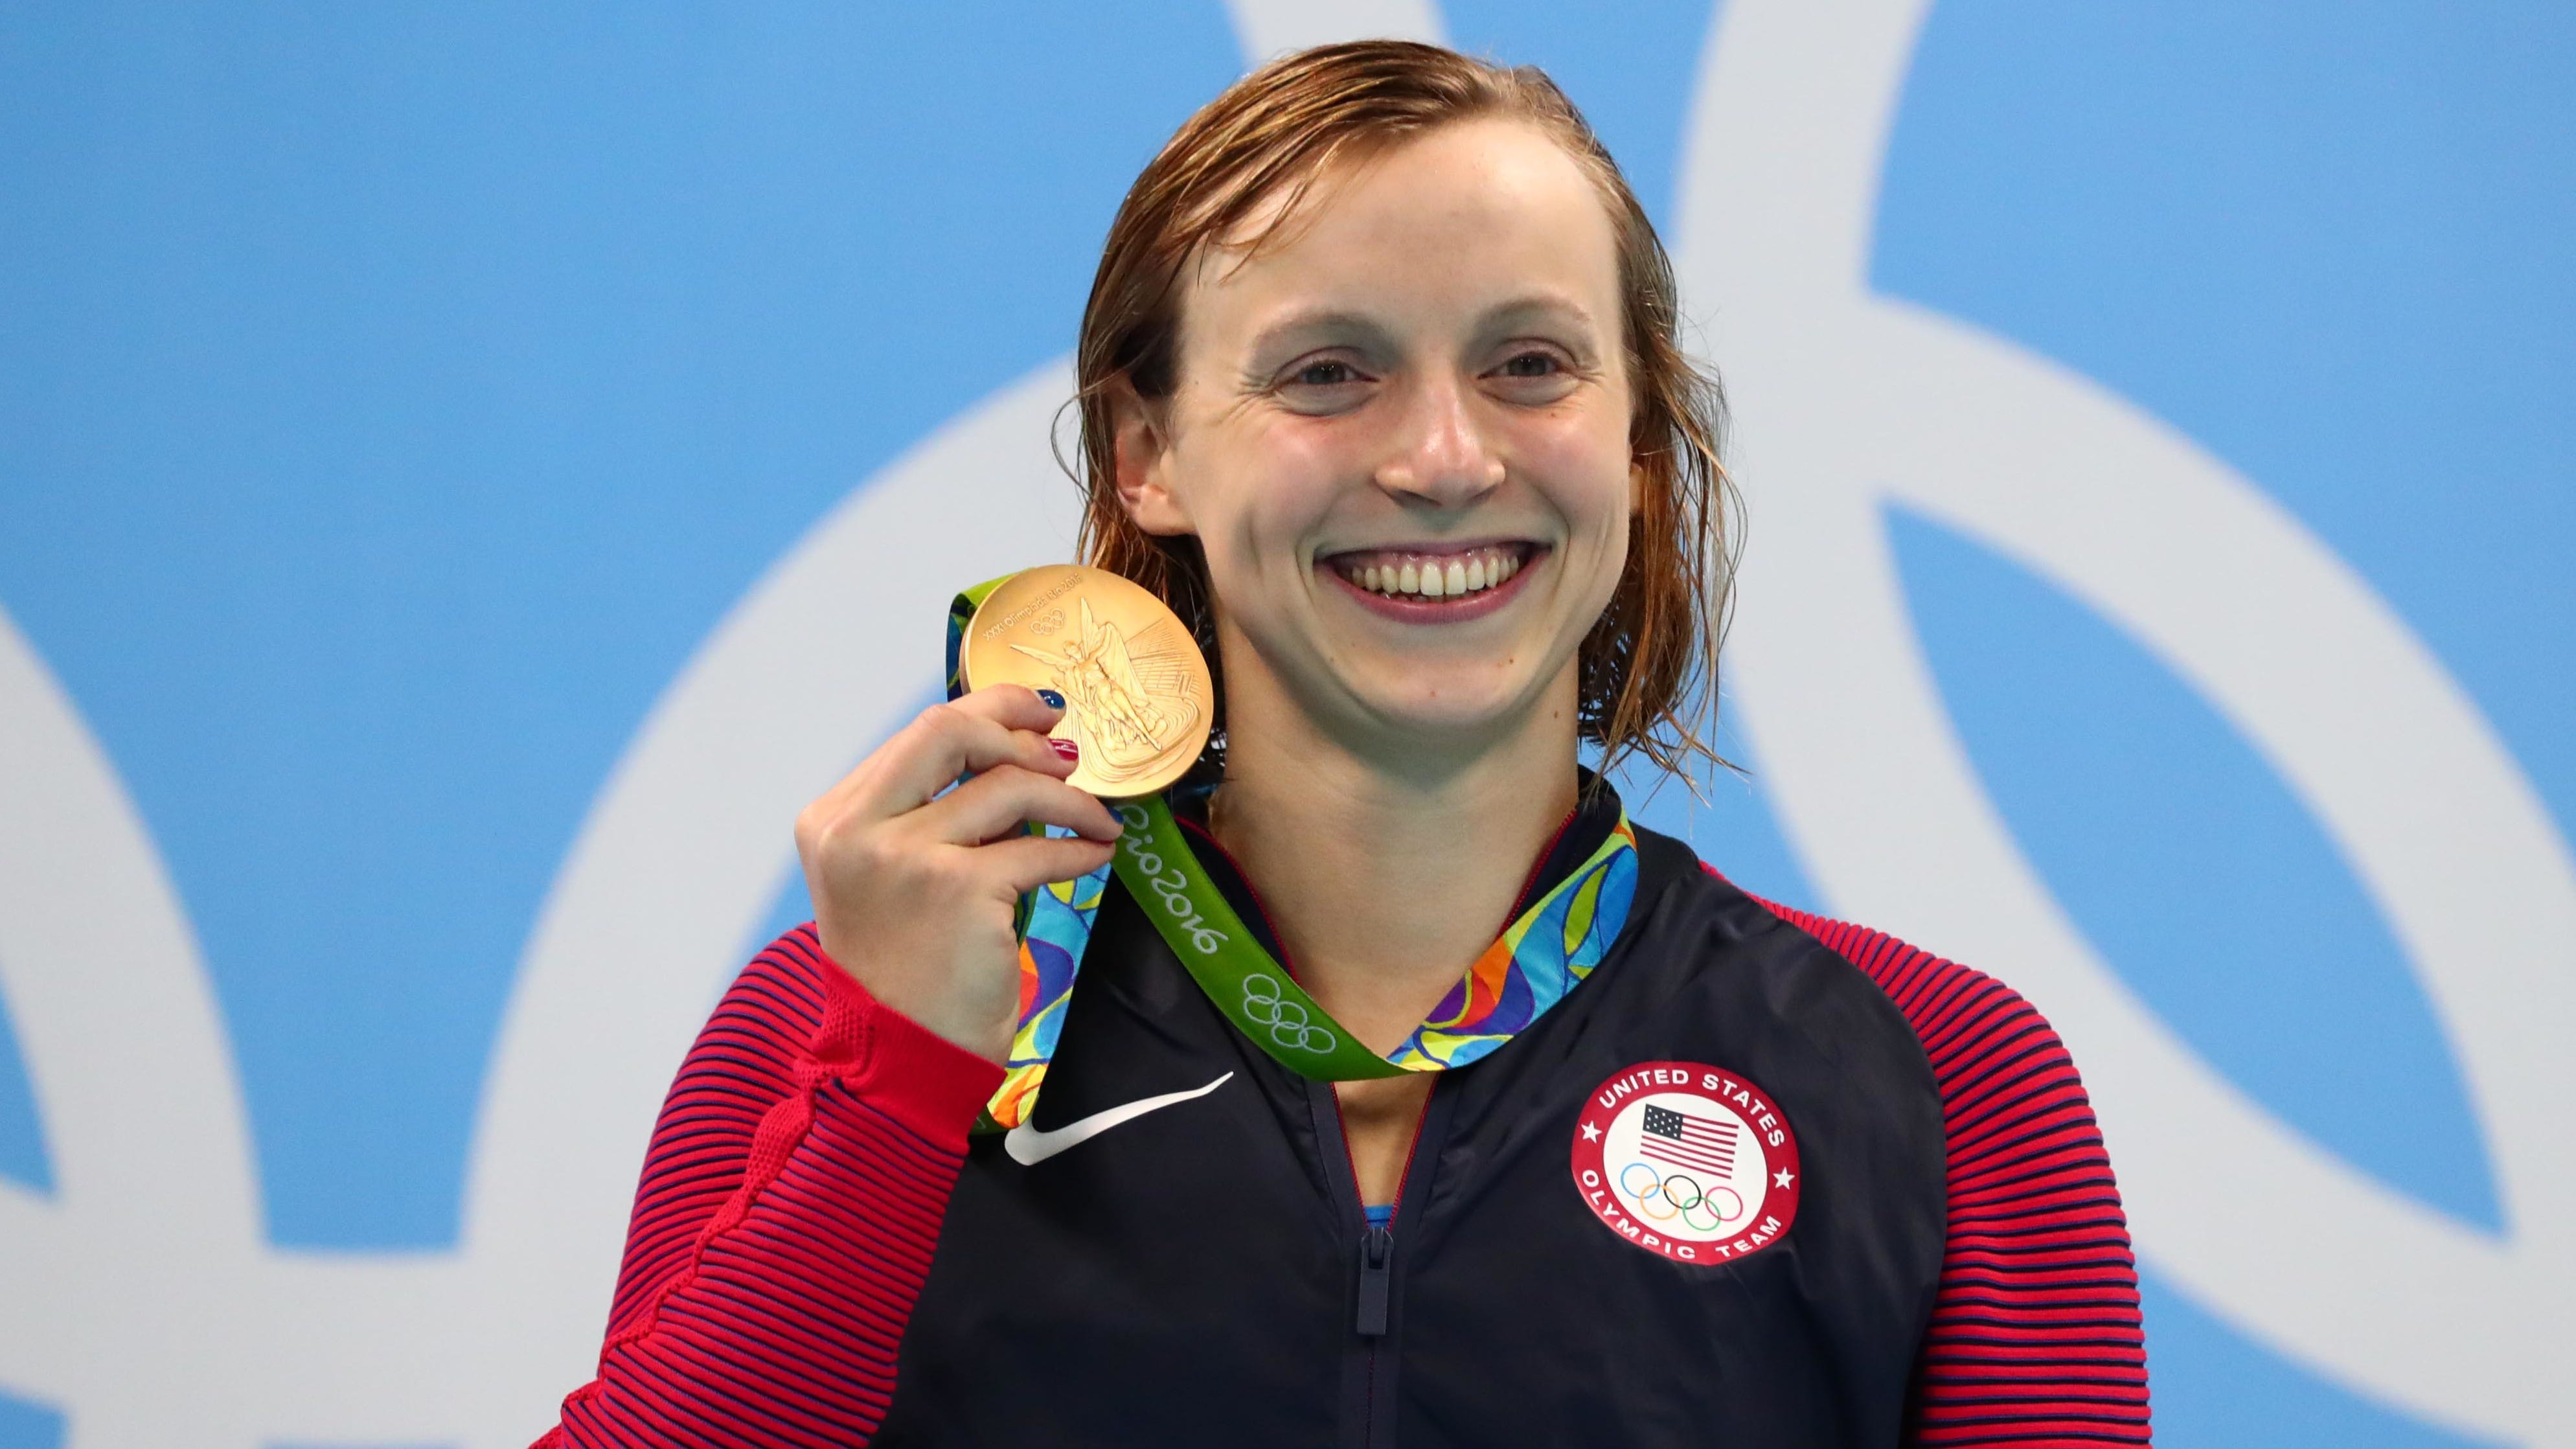 Olympic swimmer Katie Ledecky impressed by US Open athletes' conditioning